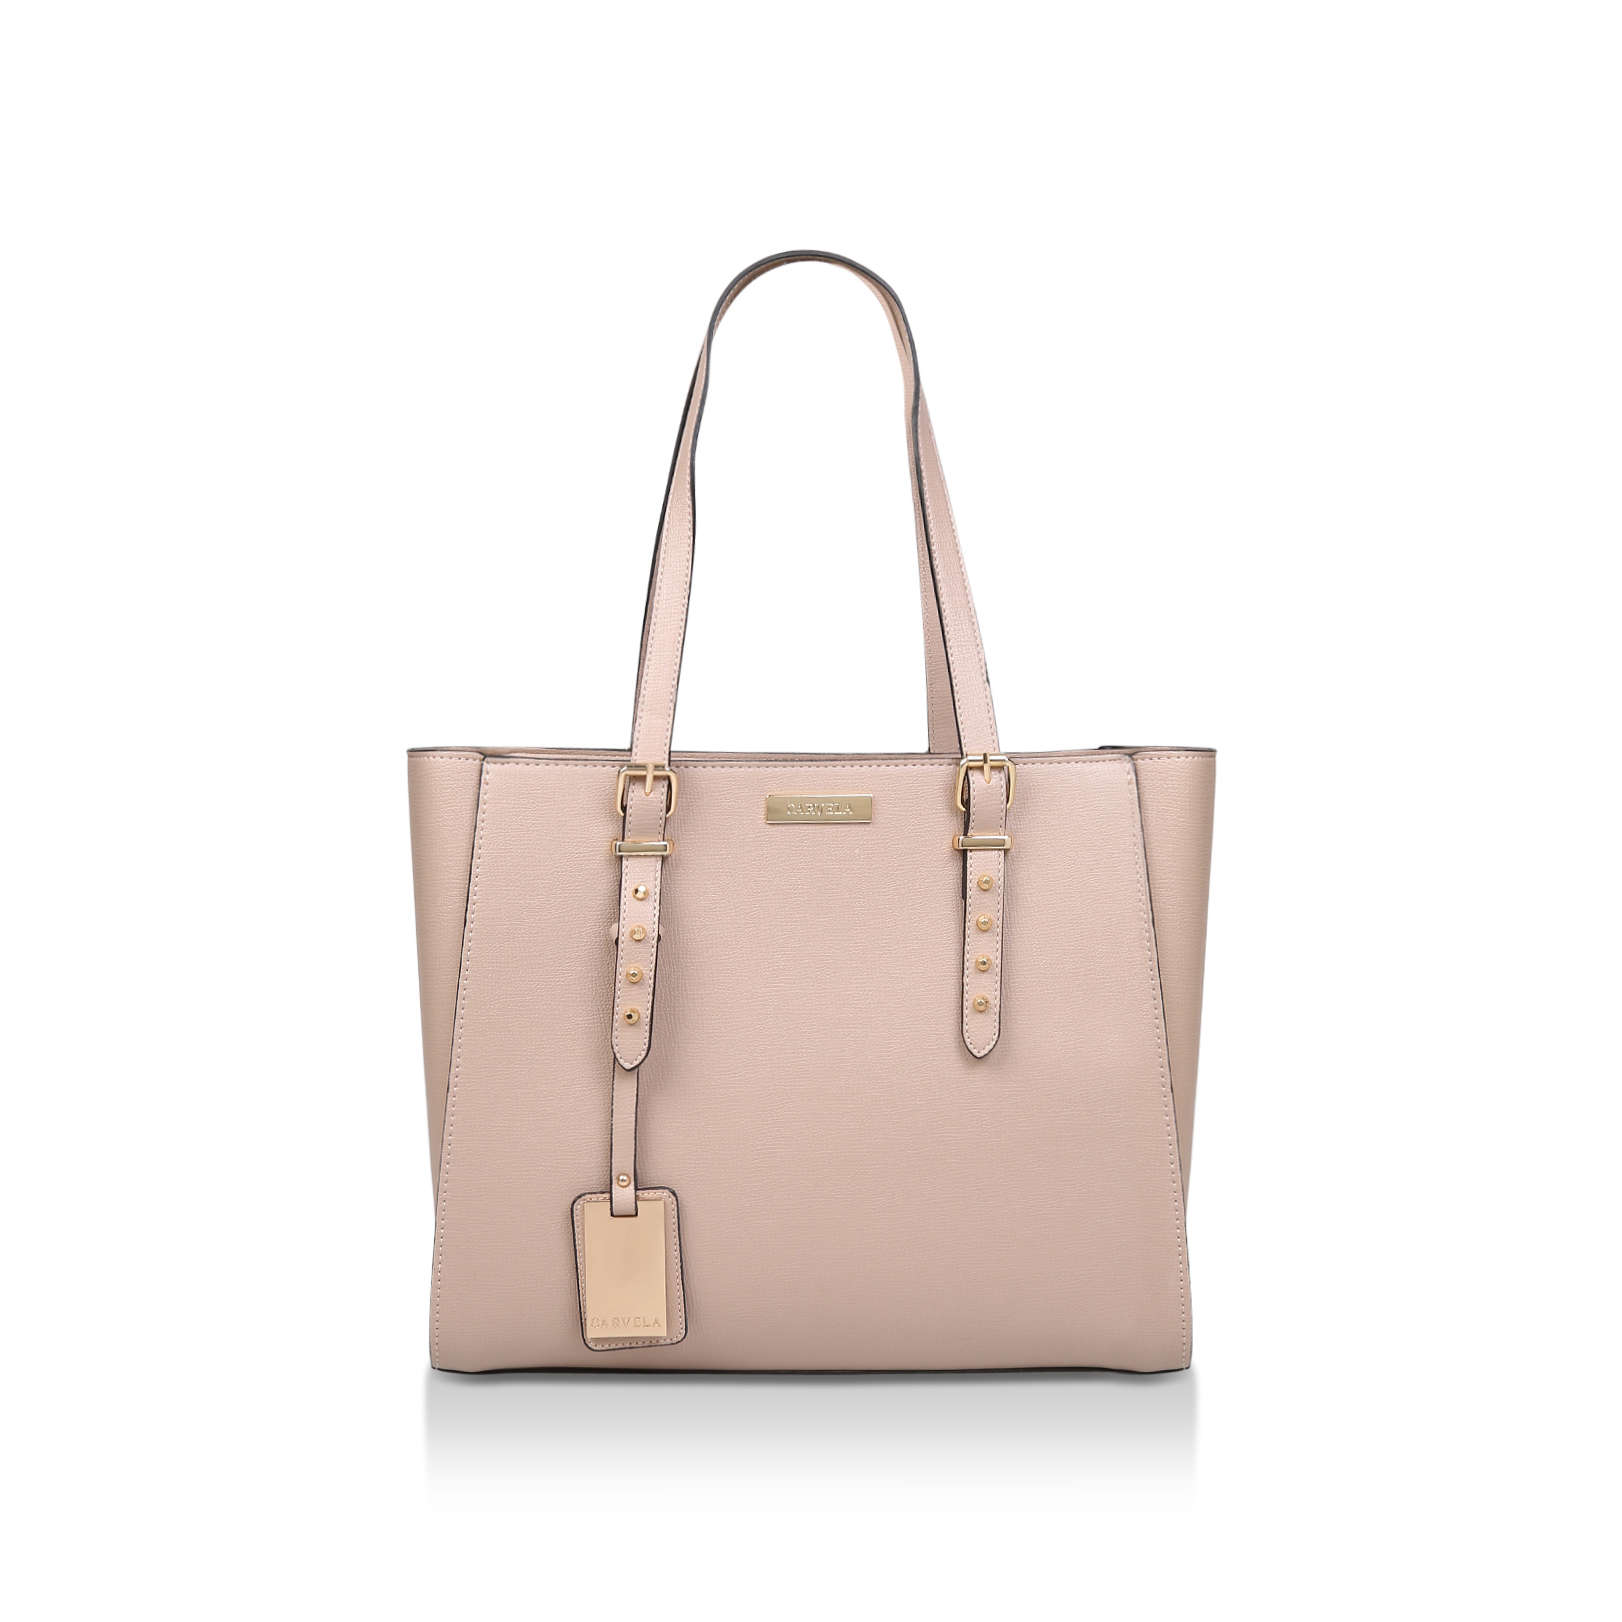 SAMMY STUDDED WINGED TOTE